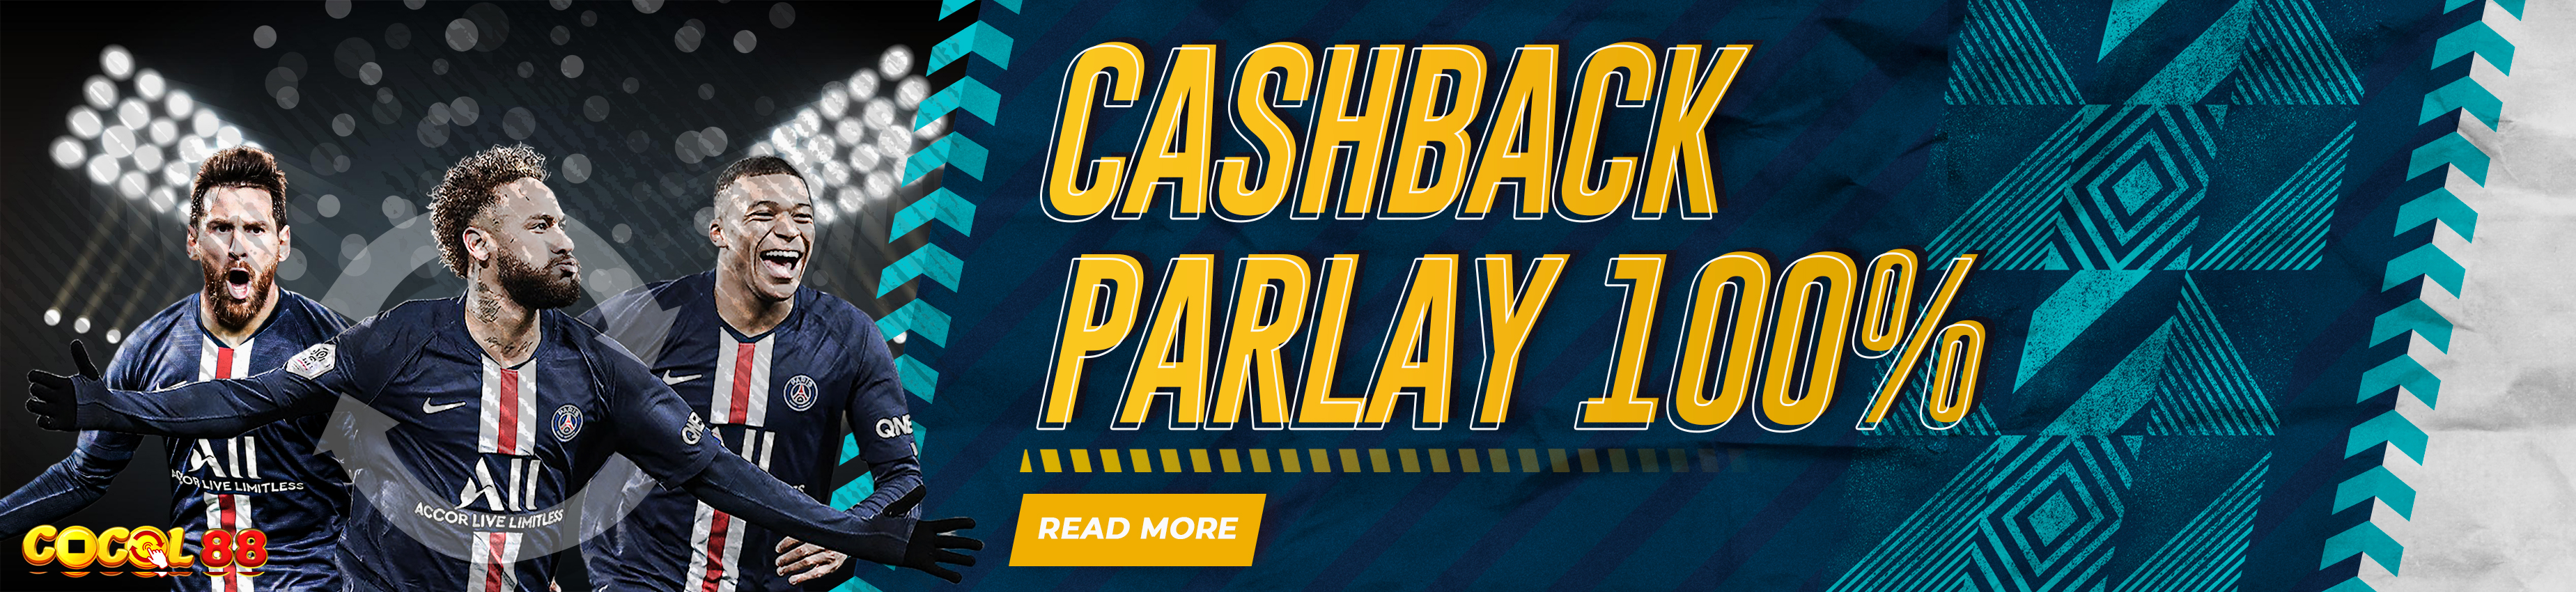 EVENT PARLAY